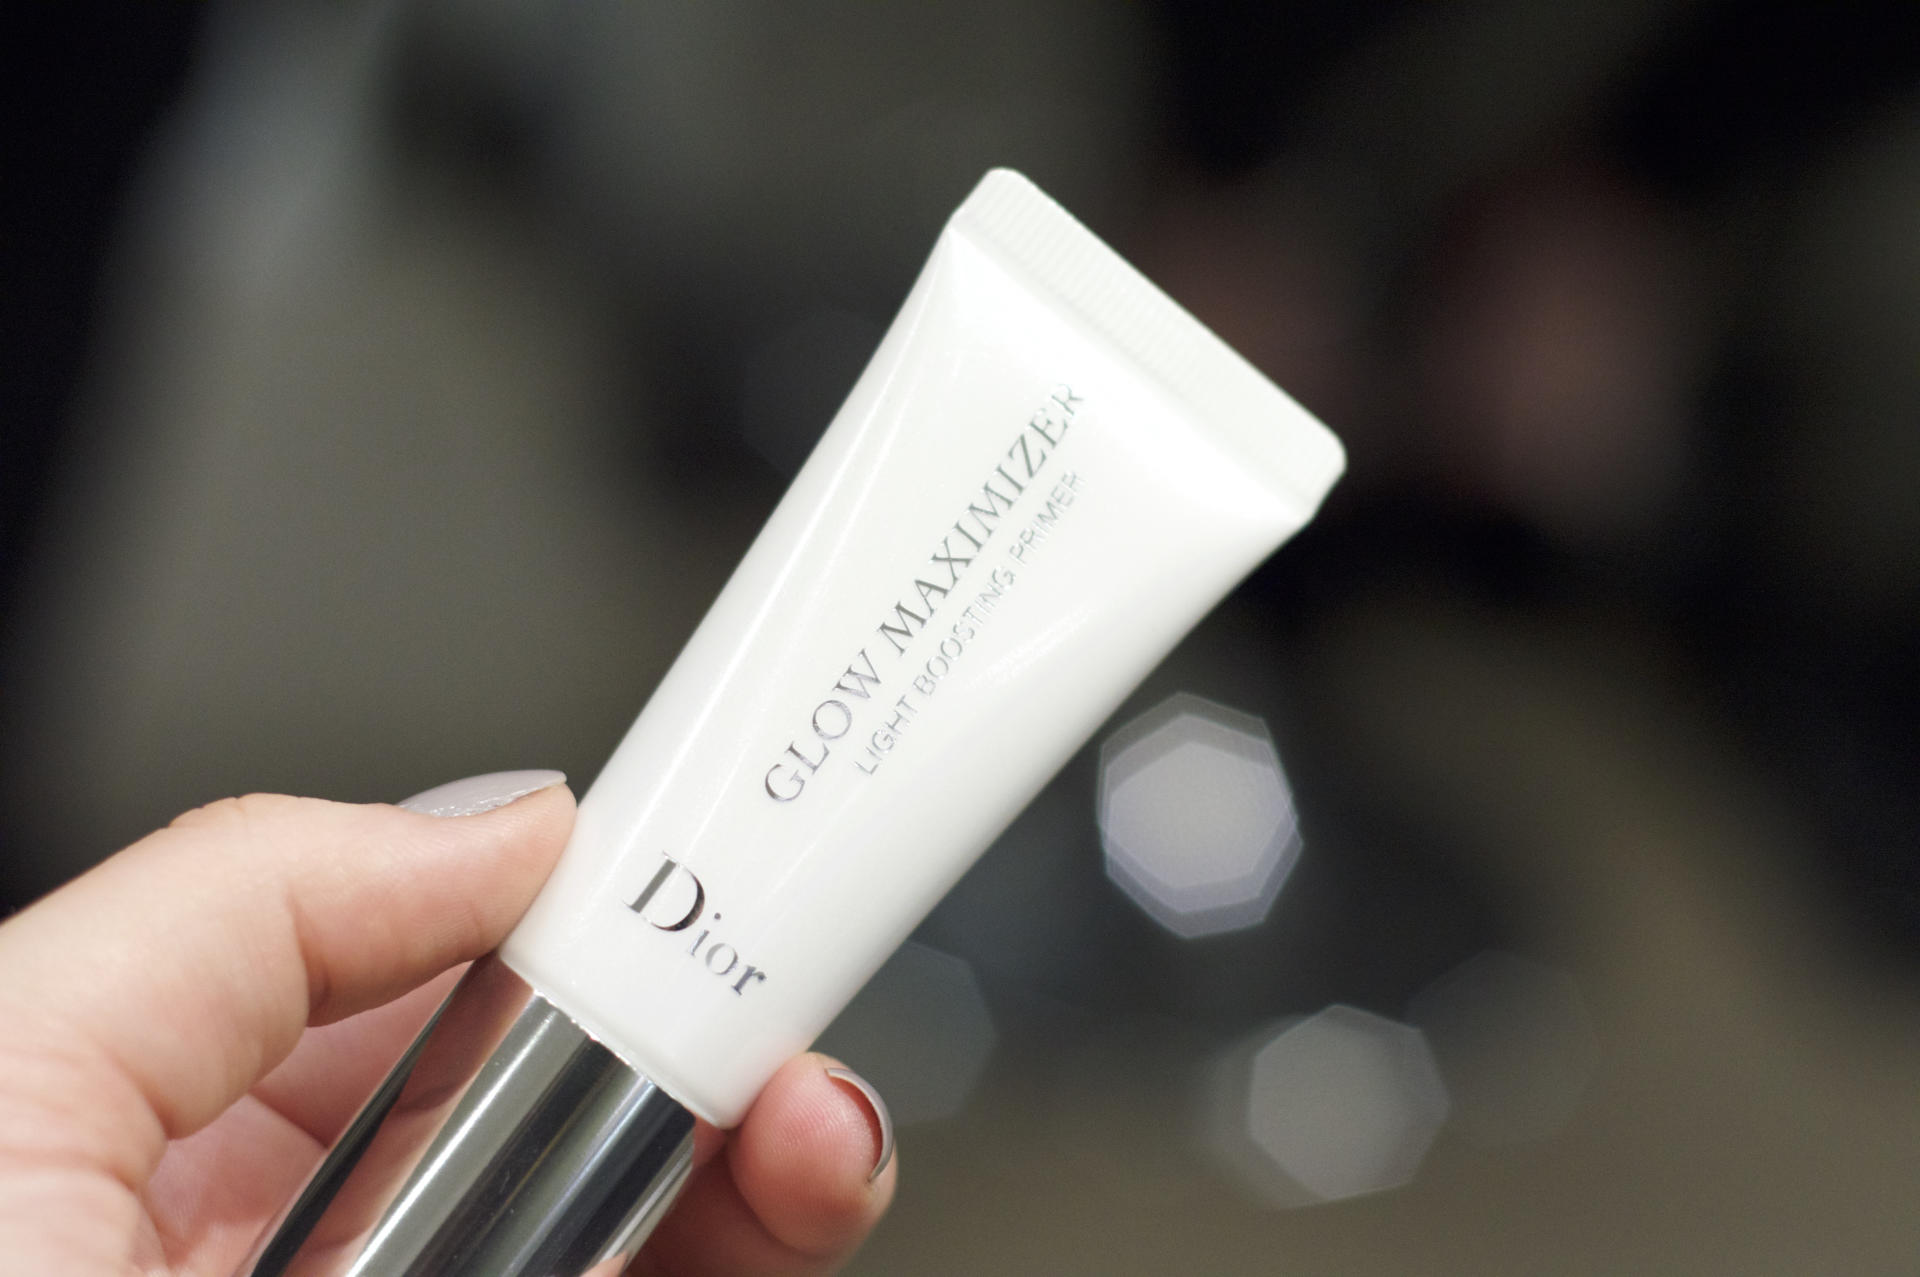 Made From Beauty Dior Glow Maximiser Light Boosting Primer